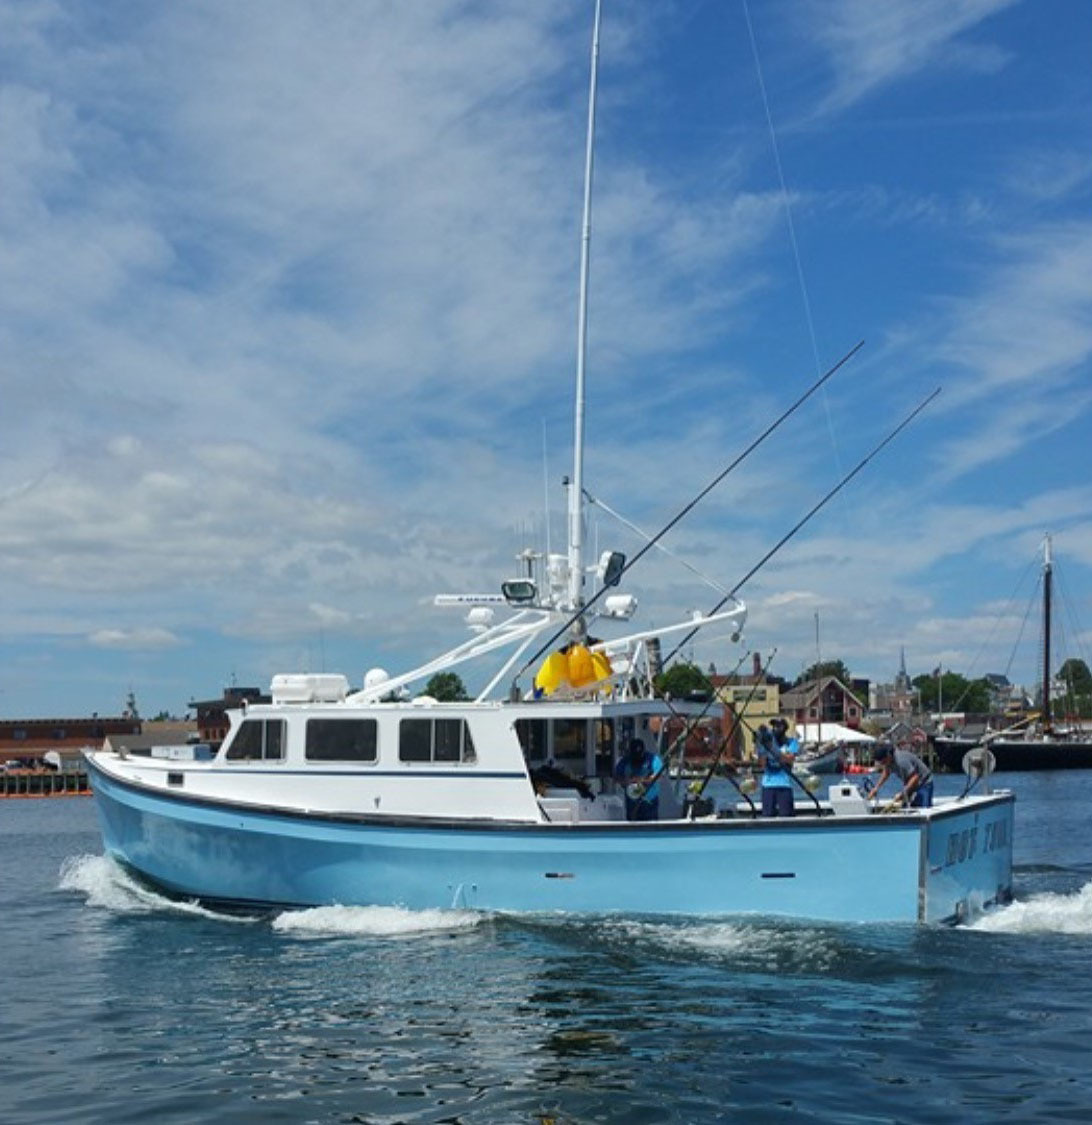 """Hot Tuna boat painted with Axalta Imron marine finishes to be featured on """"Wicked Tuna"""" television show. (Photo: Axalta)"""